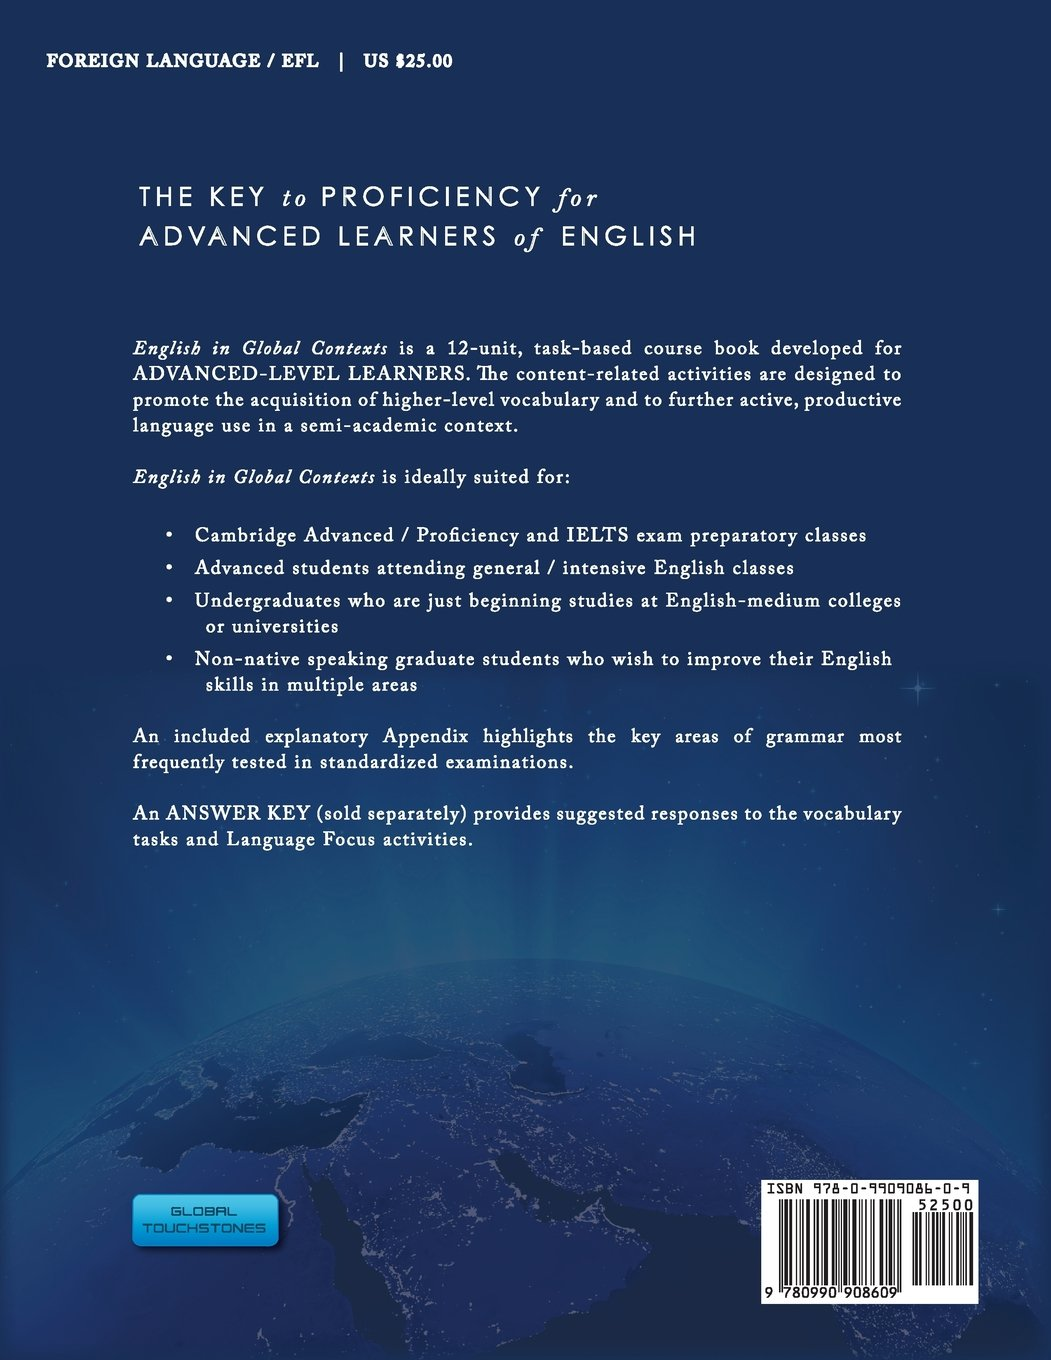 English in global contexts proficiency tasks for aspiring learners english in global contexts proficiency tasks for aspiring learners jj polk 9780990908609 amazon books fandeluxe